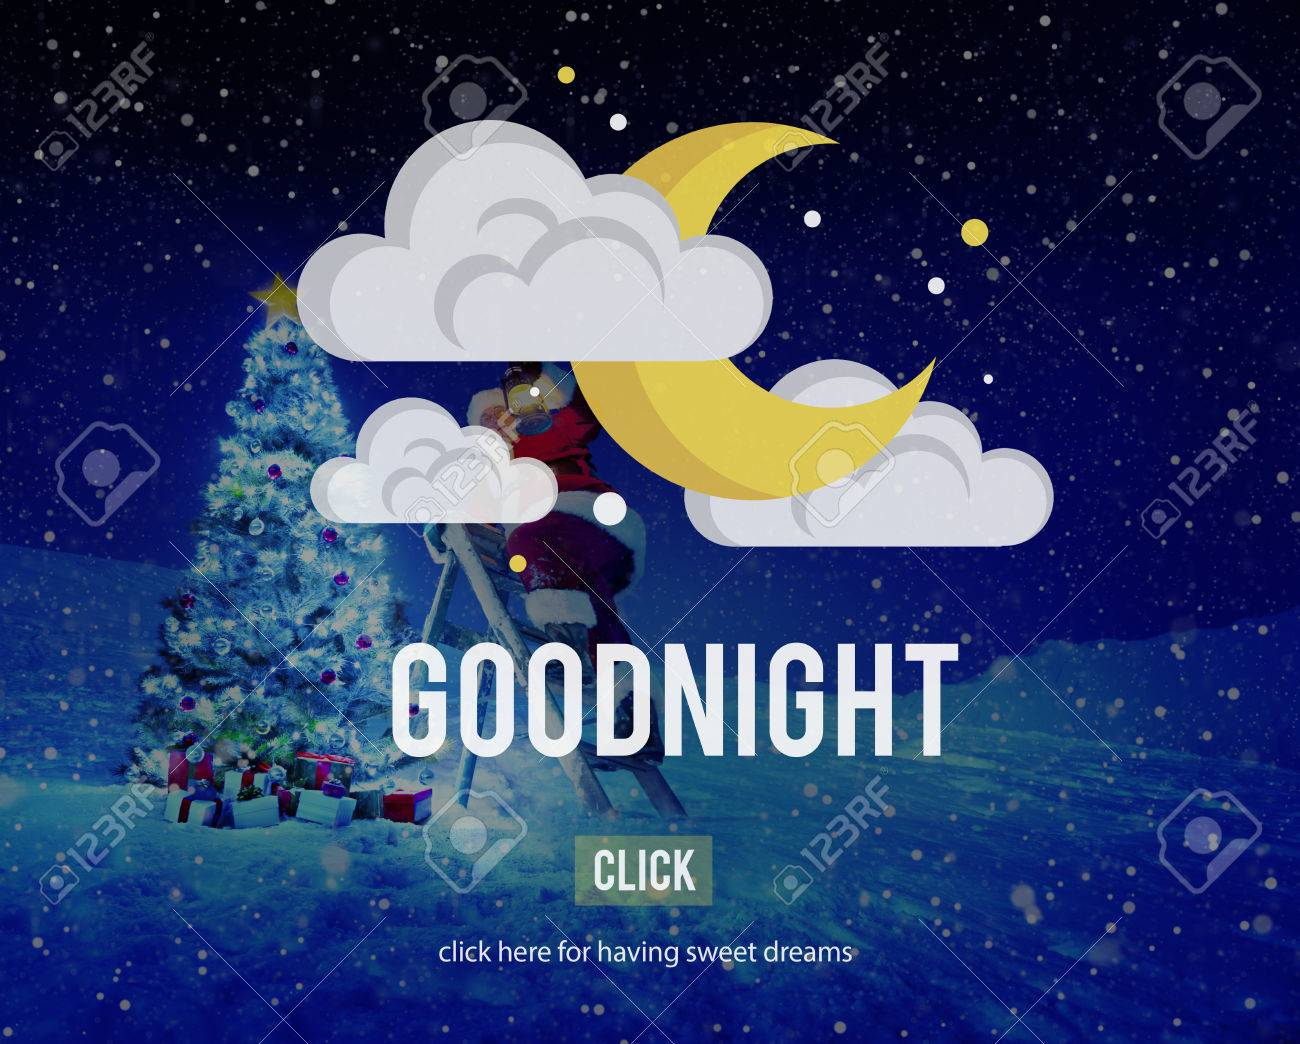 Goodnight Sweet Dreams Happiness Sleep Relief Concept Stock Photo